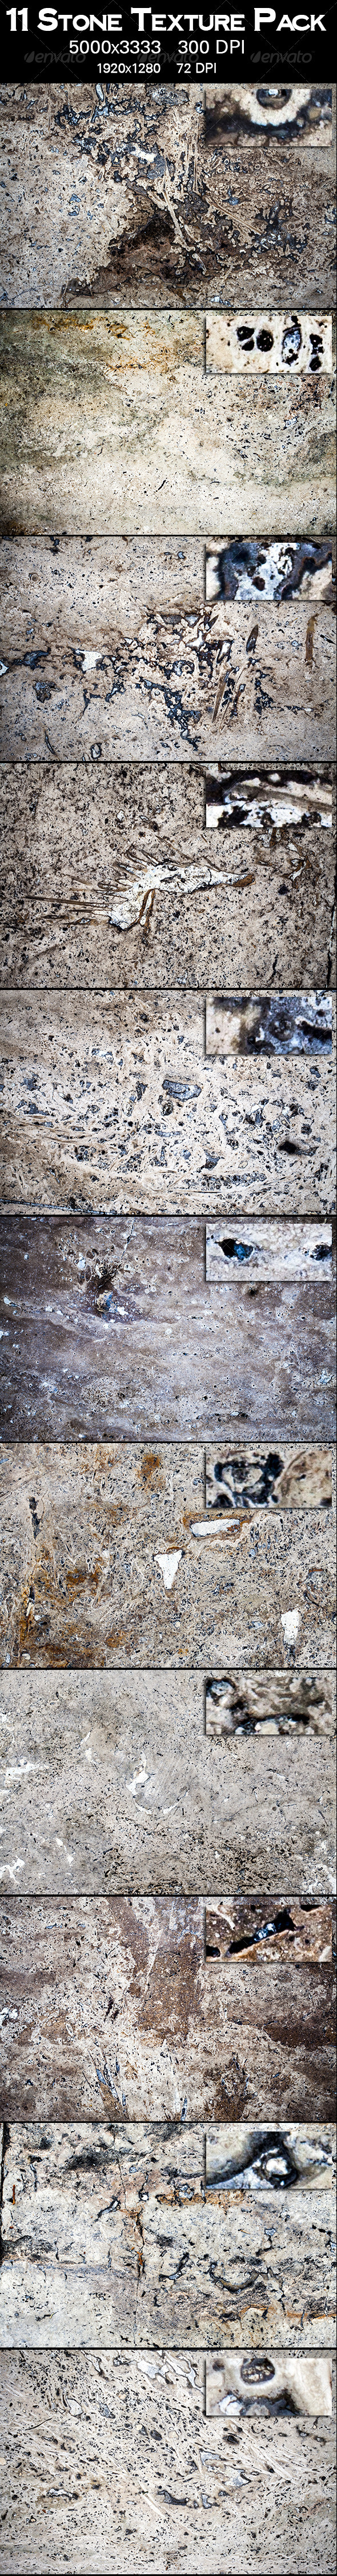 GraphicRiver 11 Stone Texture Pack 3378191